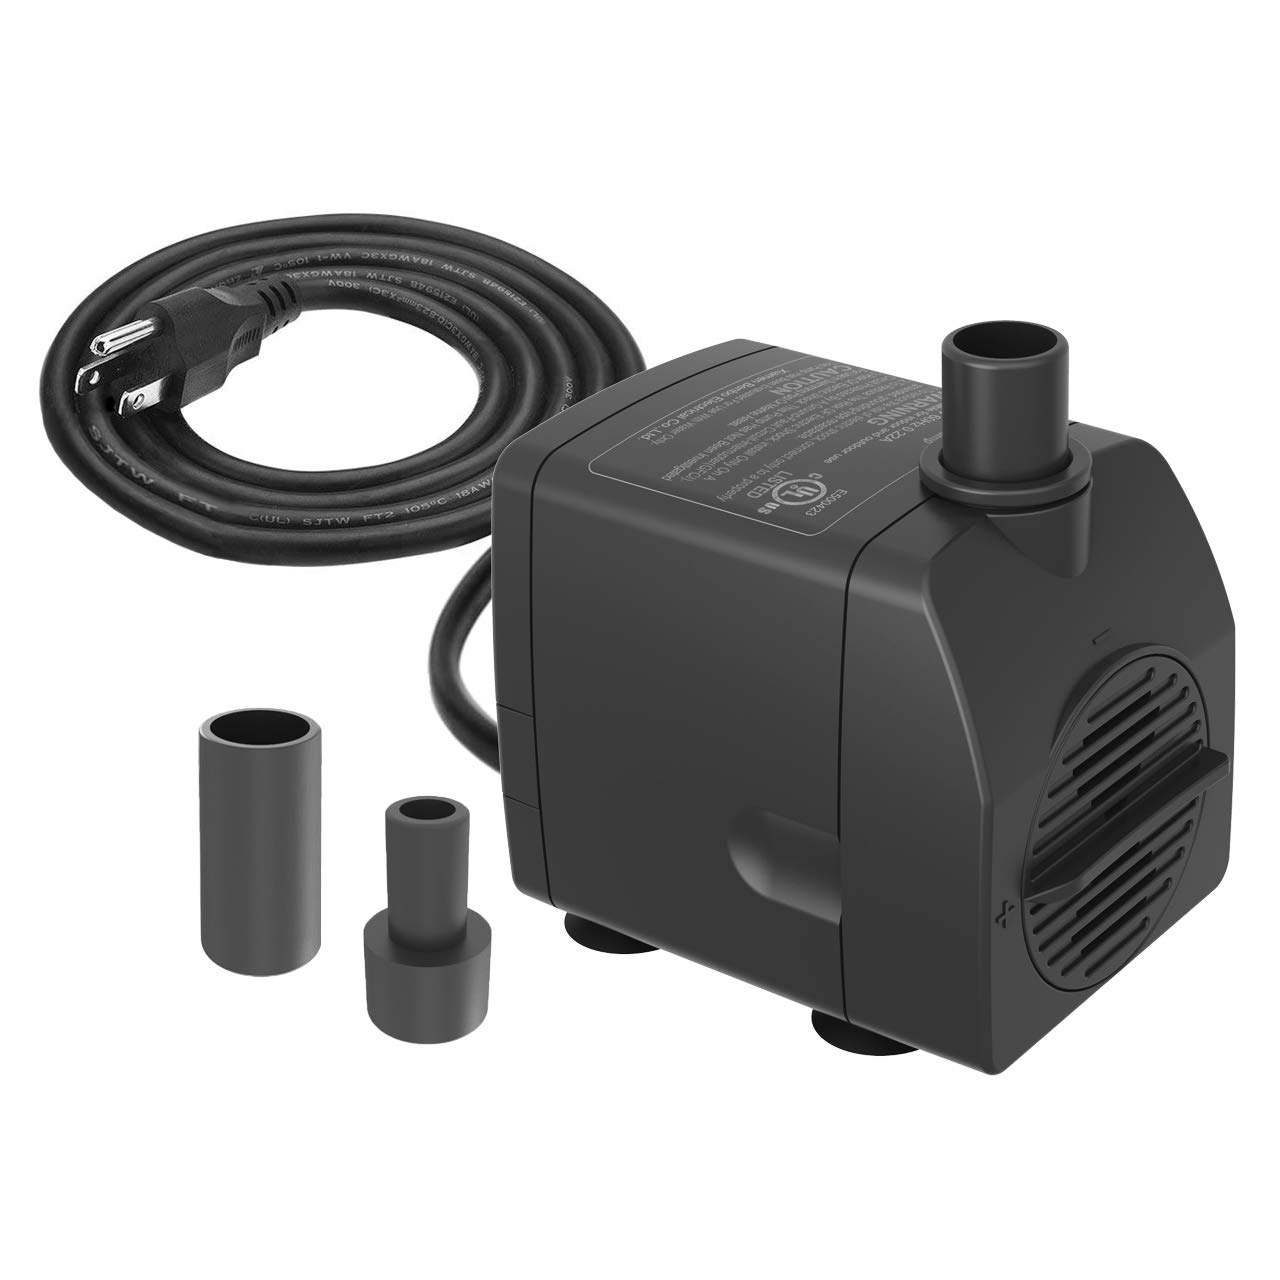 Knifel Submersible Pump 200GPH Ultra Quiet with Dry Burning Protection 5.2ft High Lift for Fountains, Hydroponics, Ponds, Aquariums & More... by Knifel